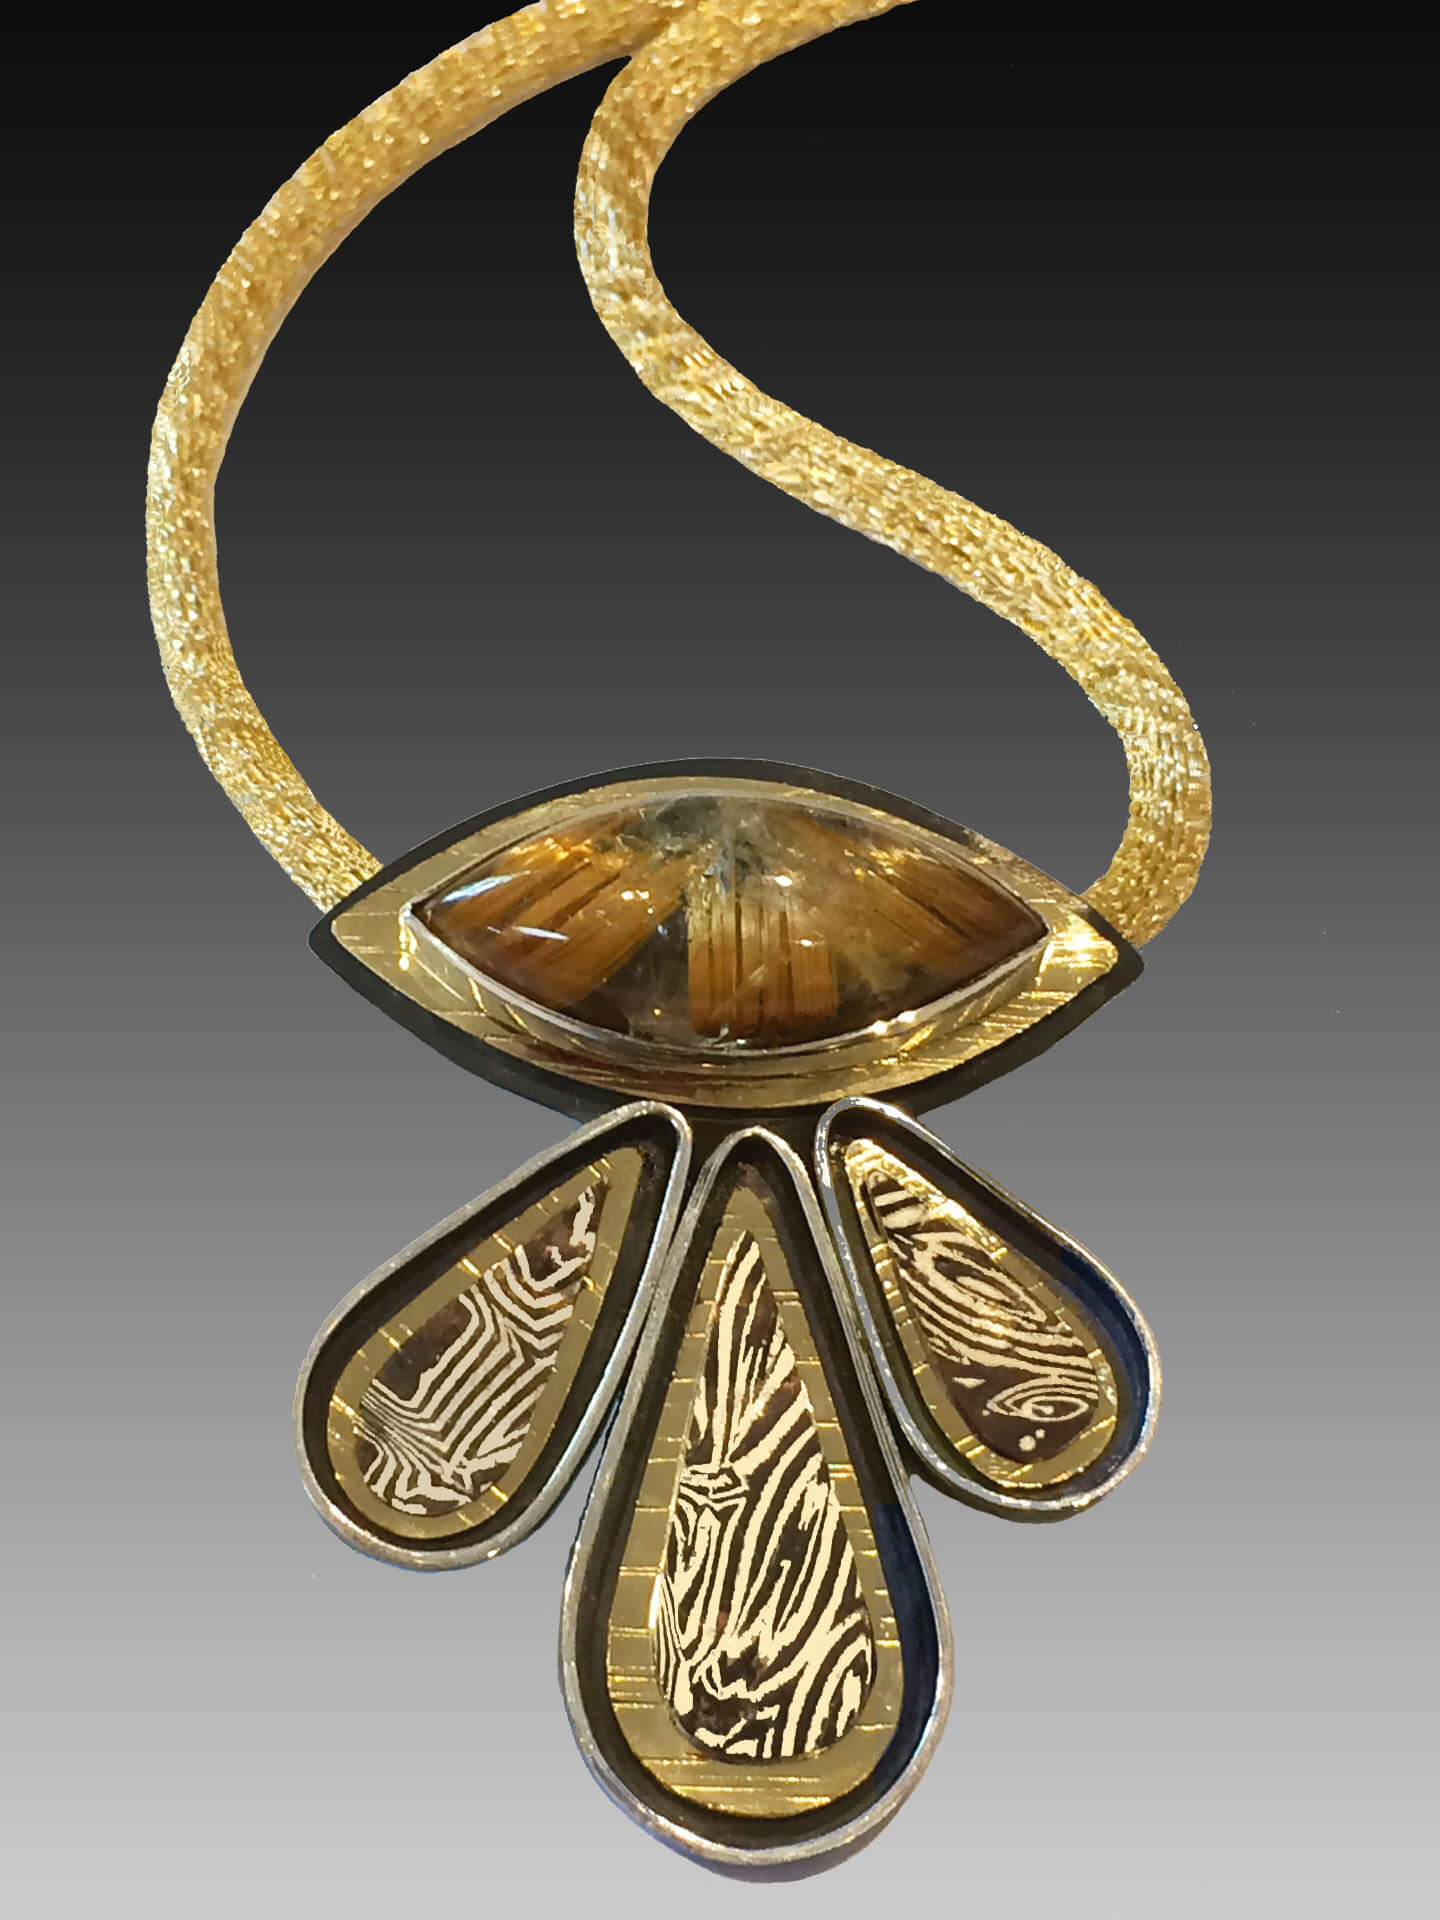 Kara Raymond Studio, Hanibara Pendant, Handmade Jewelry Woodstock-New Paltz Art & Crafts Fair